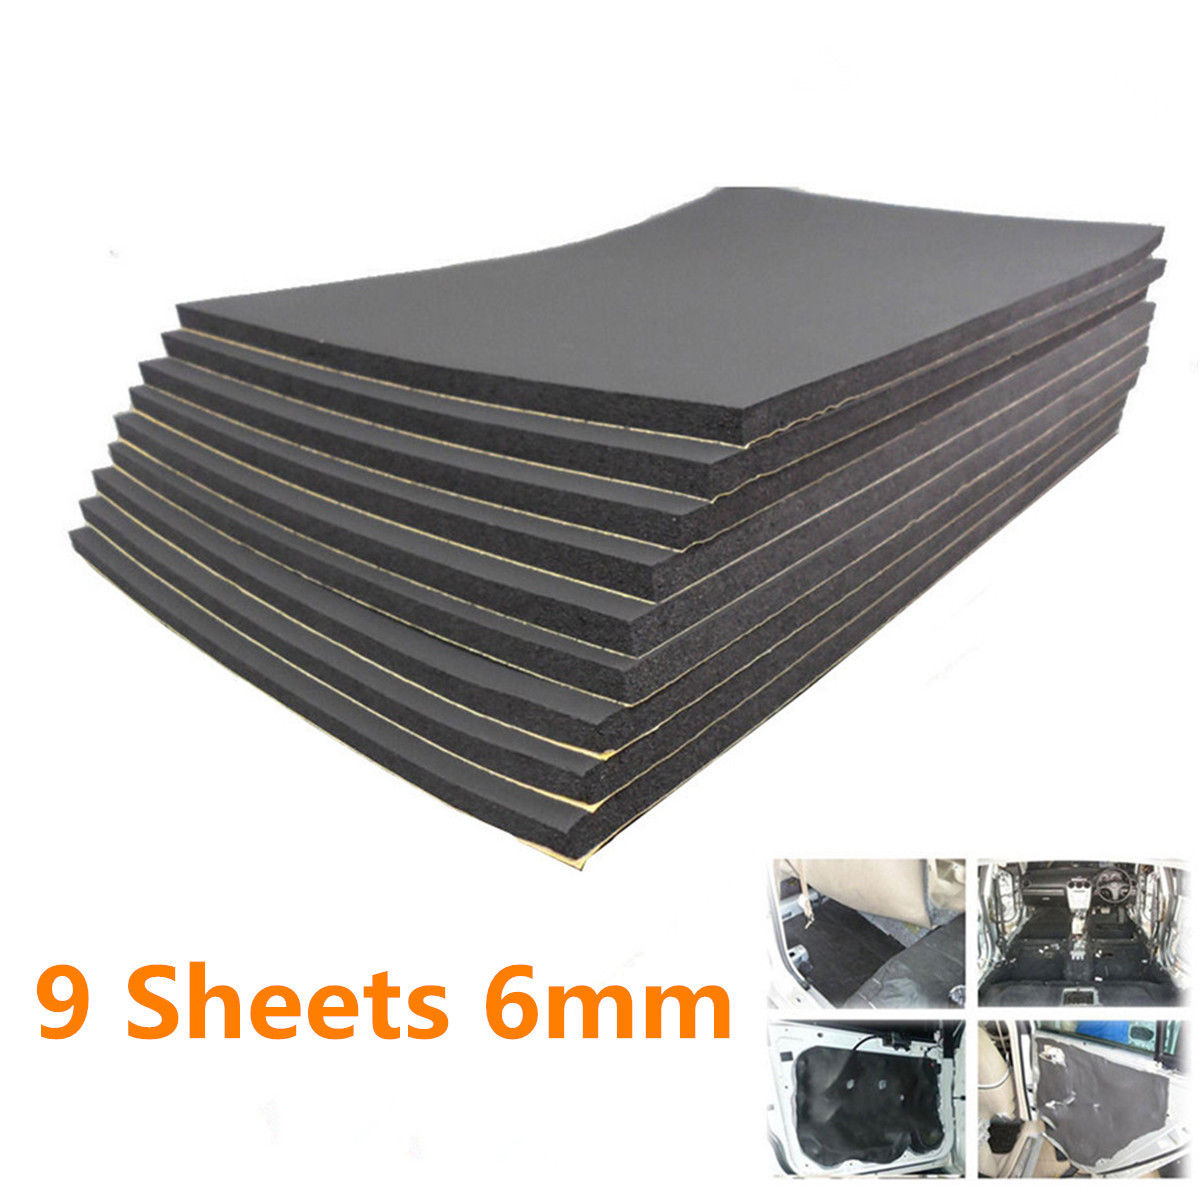 9pcs Car Van Sound Proofing Deadening Insulation Foam New 30cm*50cm*6mm Protector Auto Sound Insulation Deadening Accessories